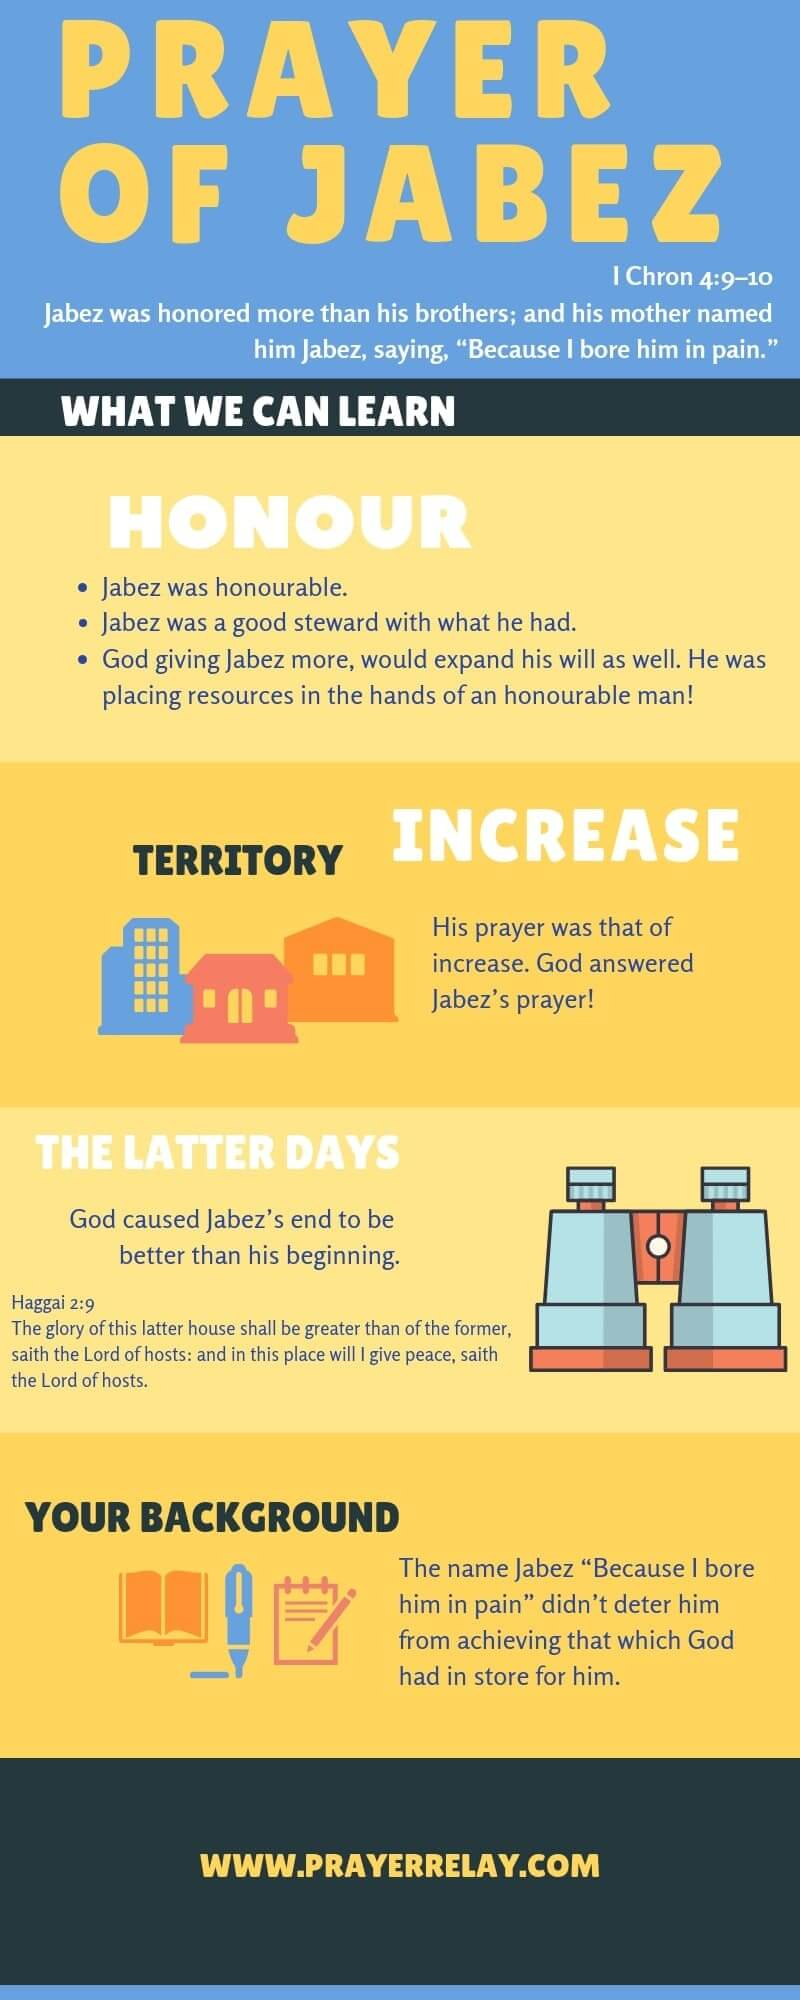 Ultimate Guide to the Powerful Prayer of Jabez +3 Principles - The